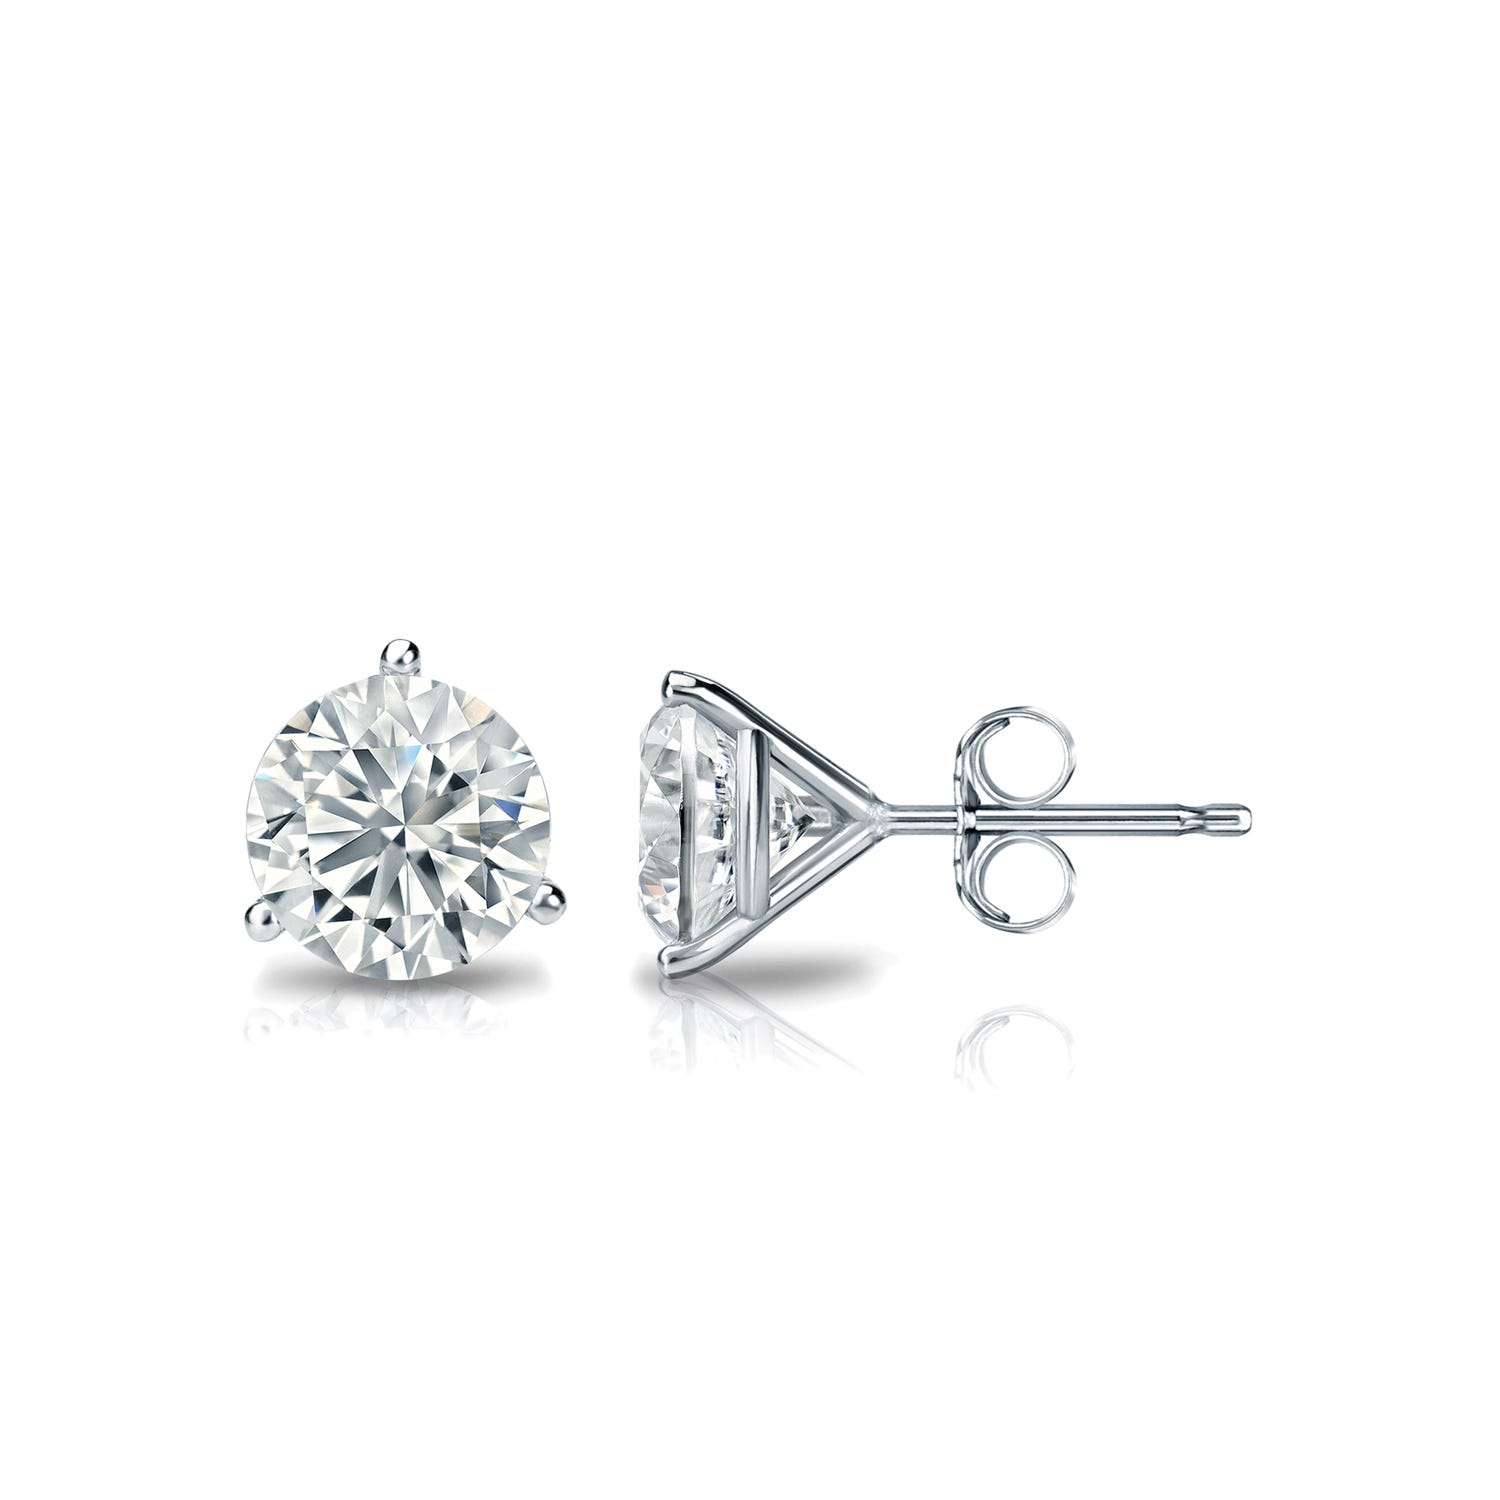 3/4 CTTW Round Diamond Solitaire Stud Earrings IJ SI2 in Platinum IGI Certified 3-Prong Setting